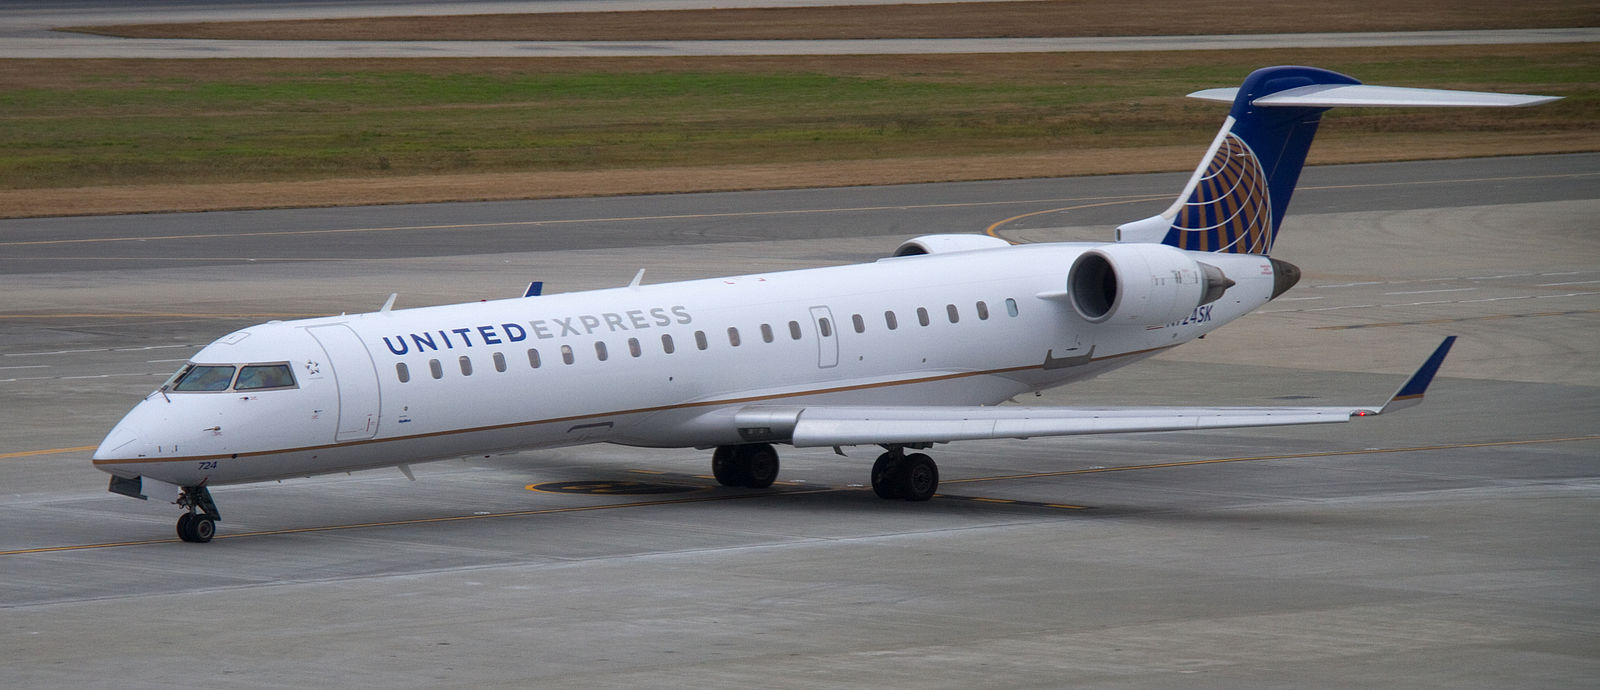 United Airlines Carry-On Sizes, Rules & Restrictions [Read